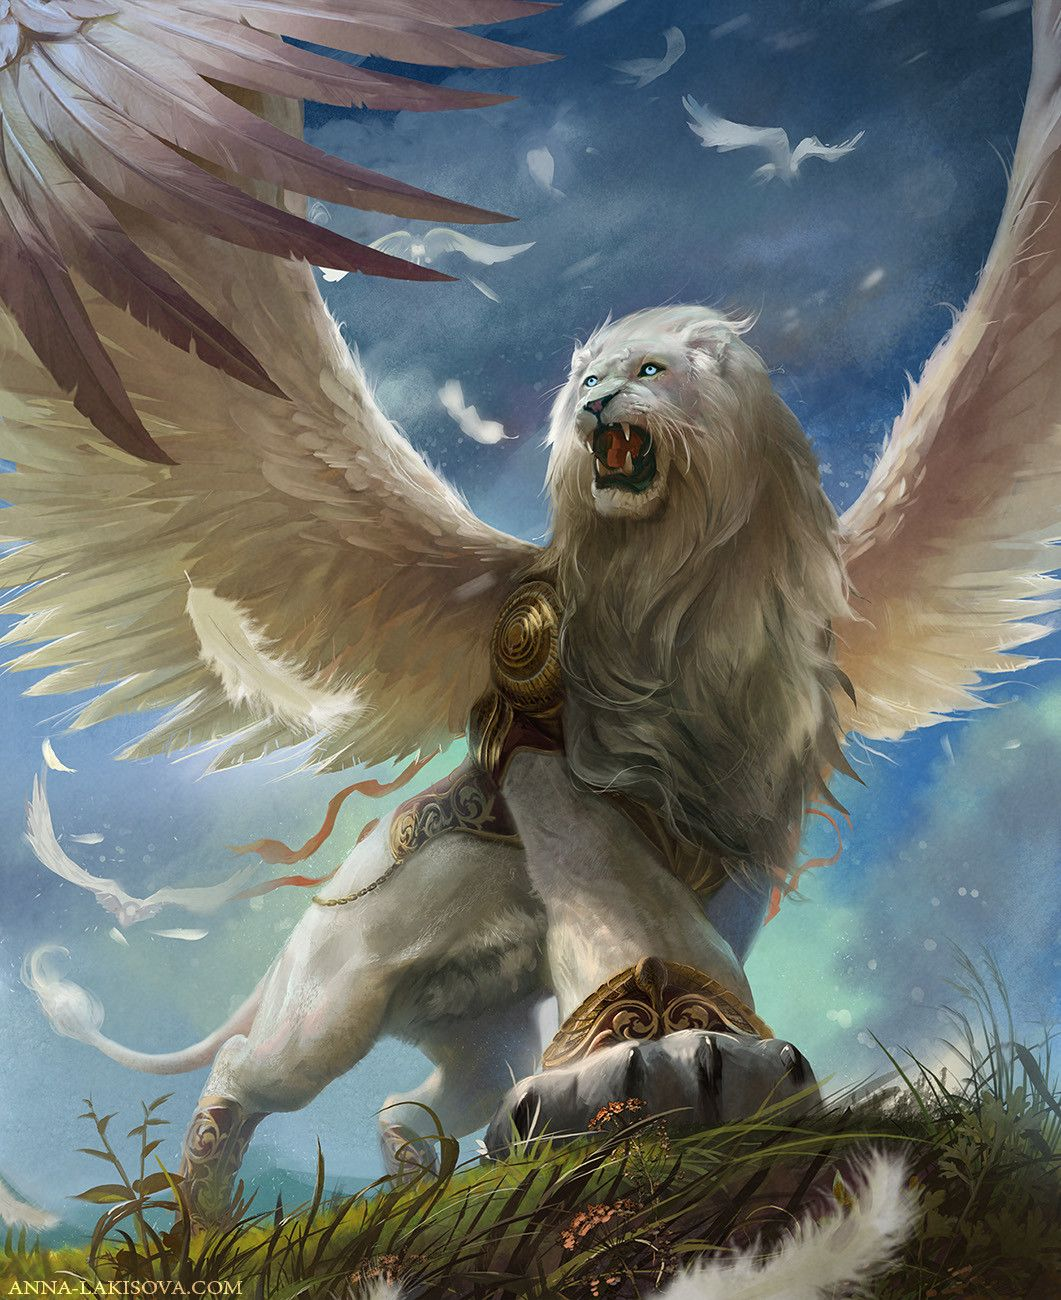 5b01ceb54 He looked at the enemy wearing a shield of shame . God embrace  her  with  the wings of courage and the lion promising eternal apotheosis